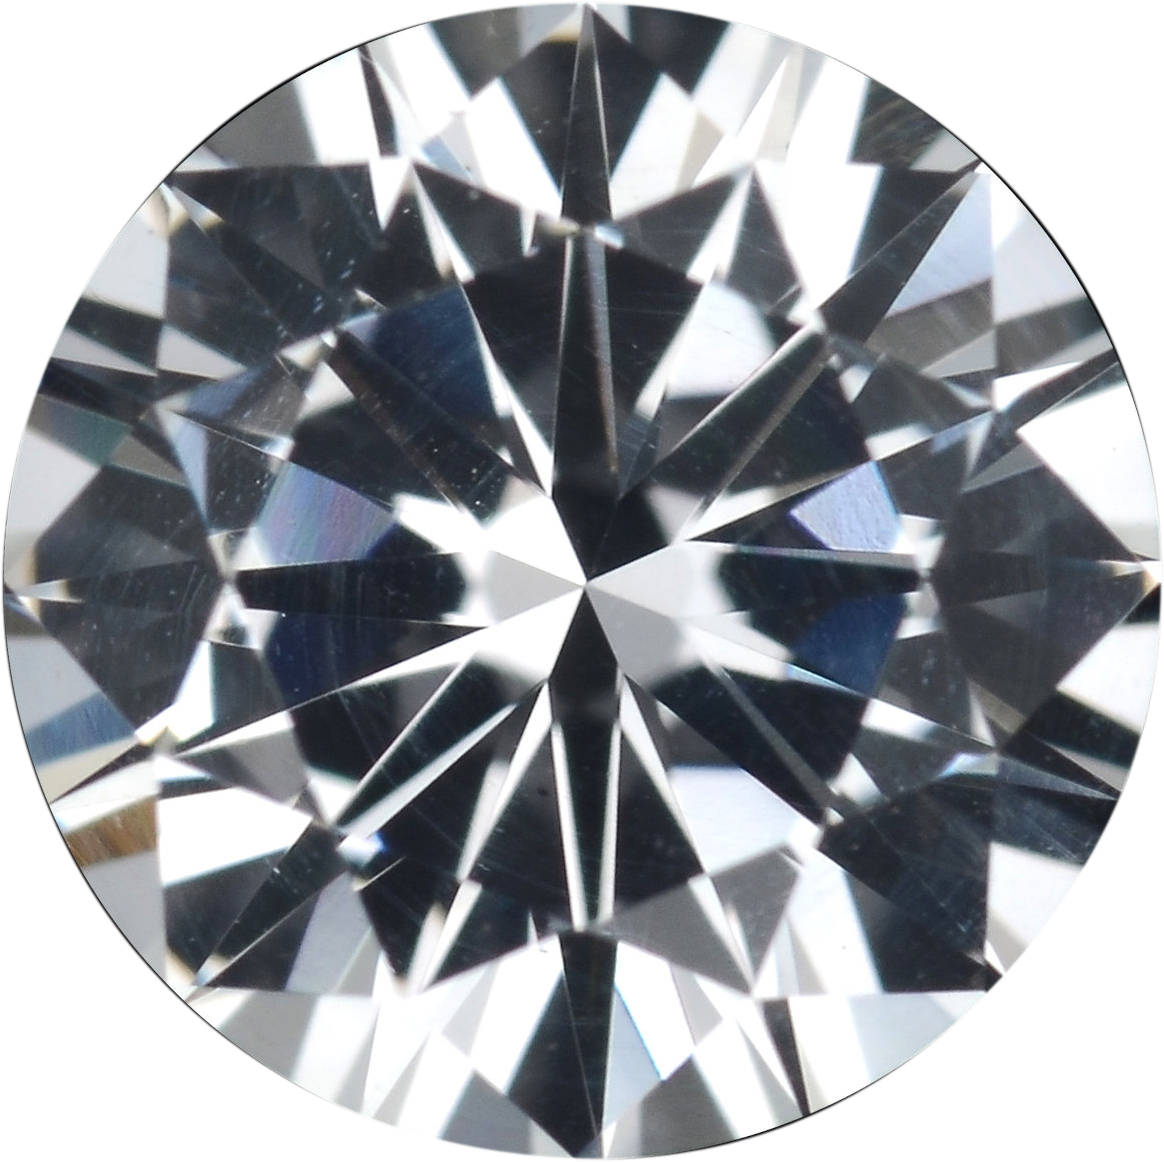 1.18 carats White Loose Sapphire Gemstone in Round Cut, 6.47 mm